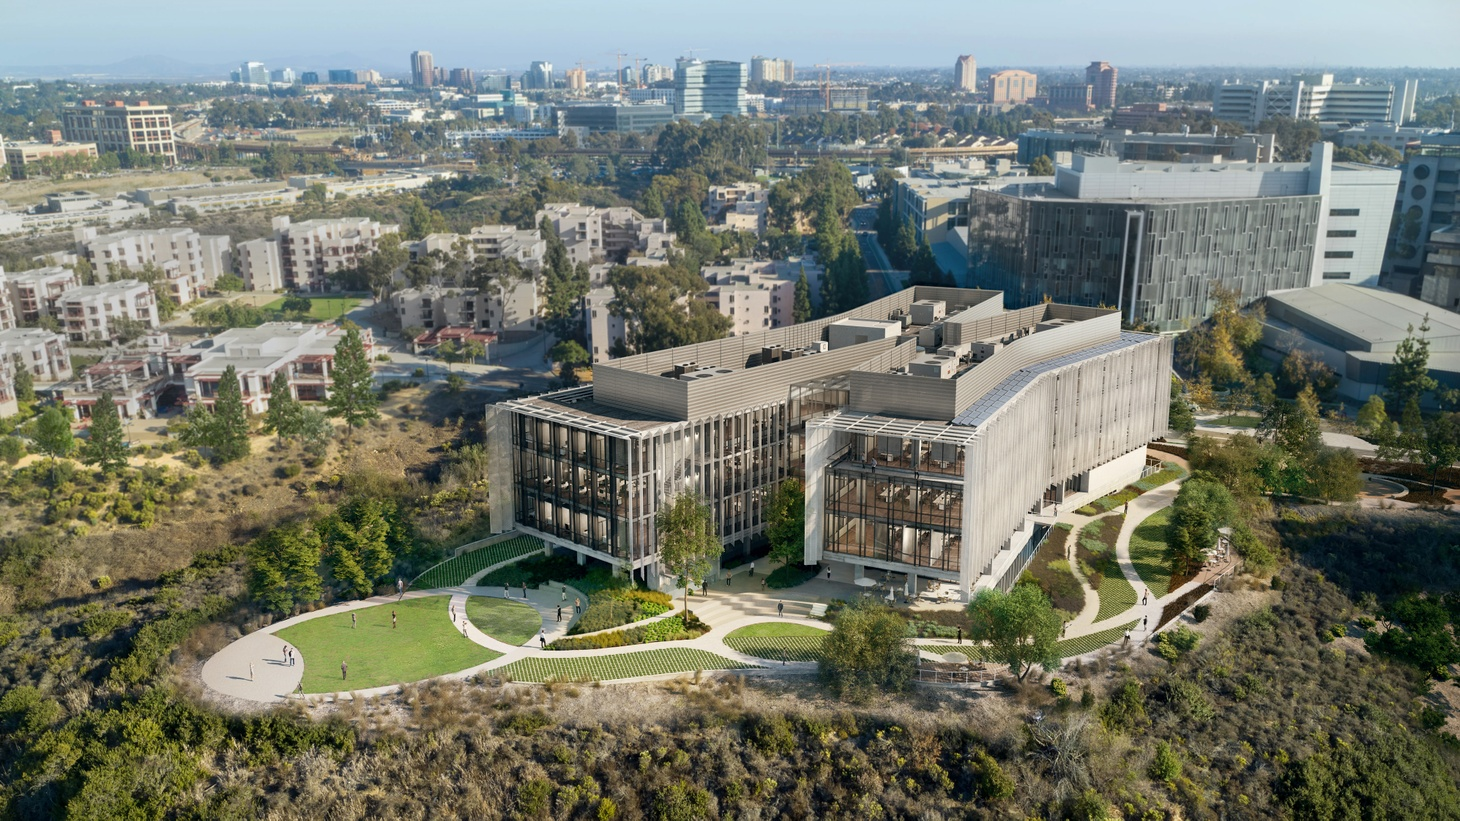 Prop 16 would amend the California Constitution to allow race, ethnicity, sex, color and national origin to be considered when making decisions about accepting students to public universities (such as UC San Diego, pictured), awarding state government contracts, and hiring state government workers.